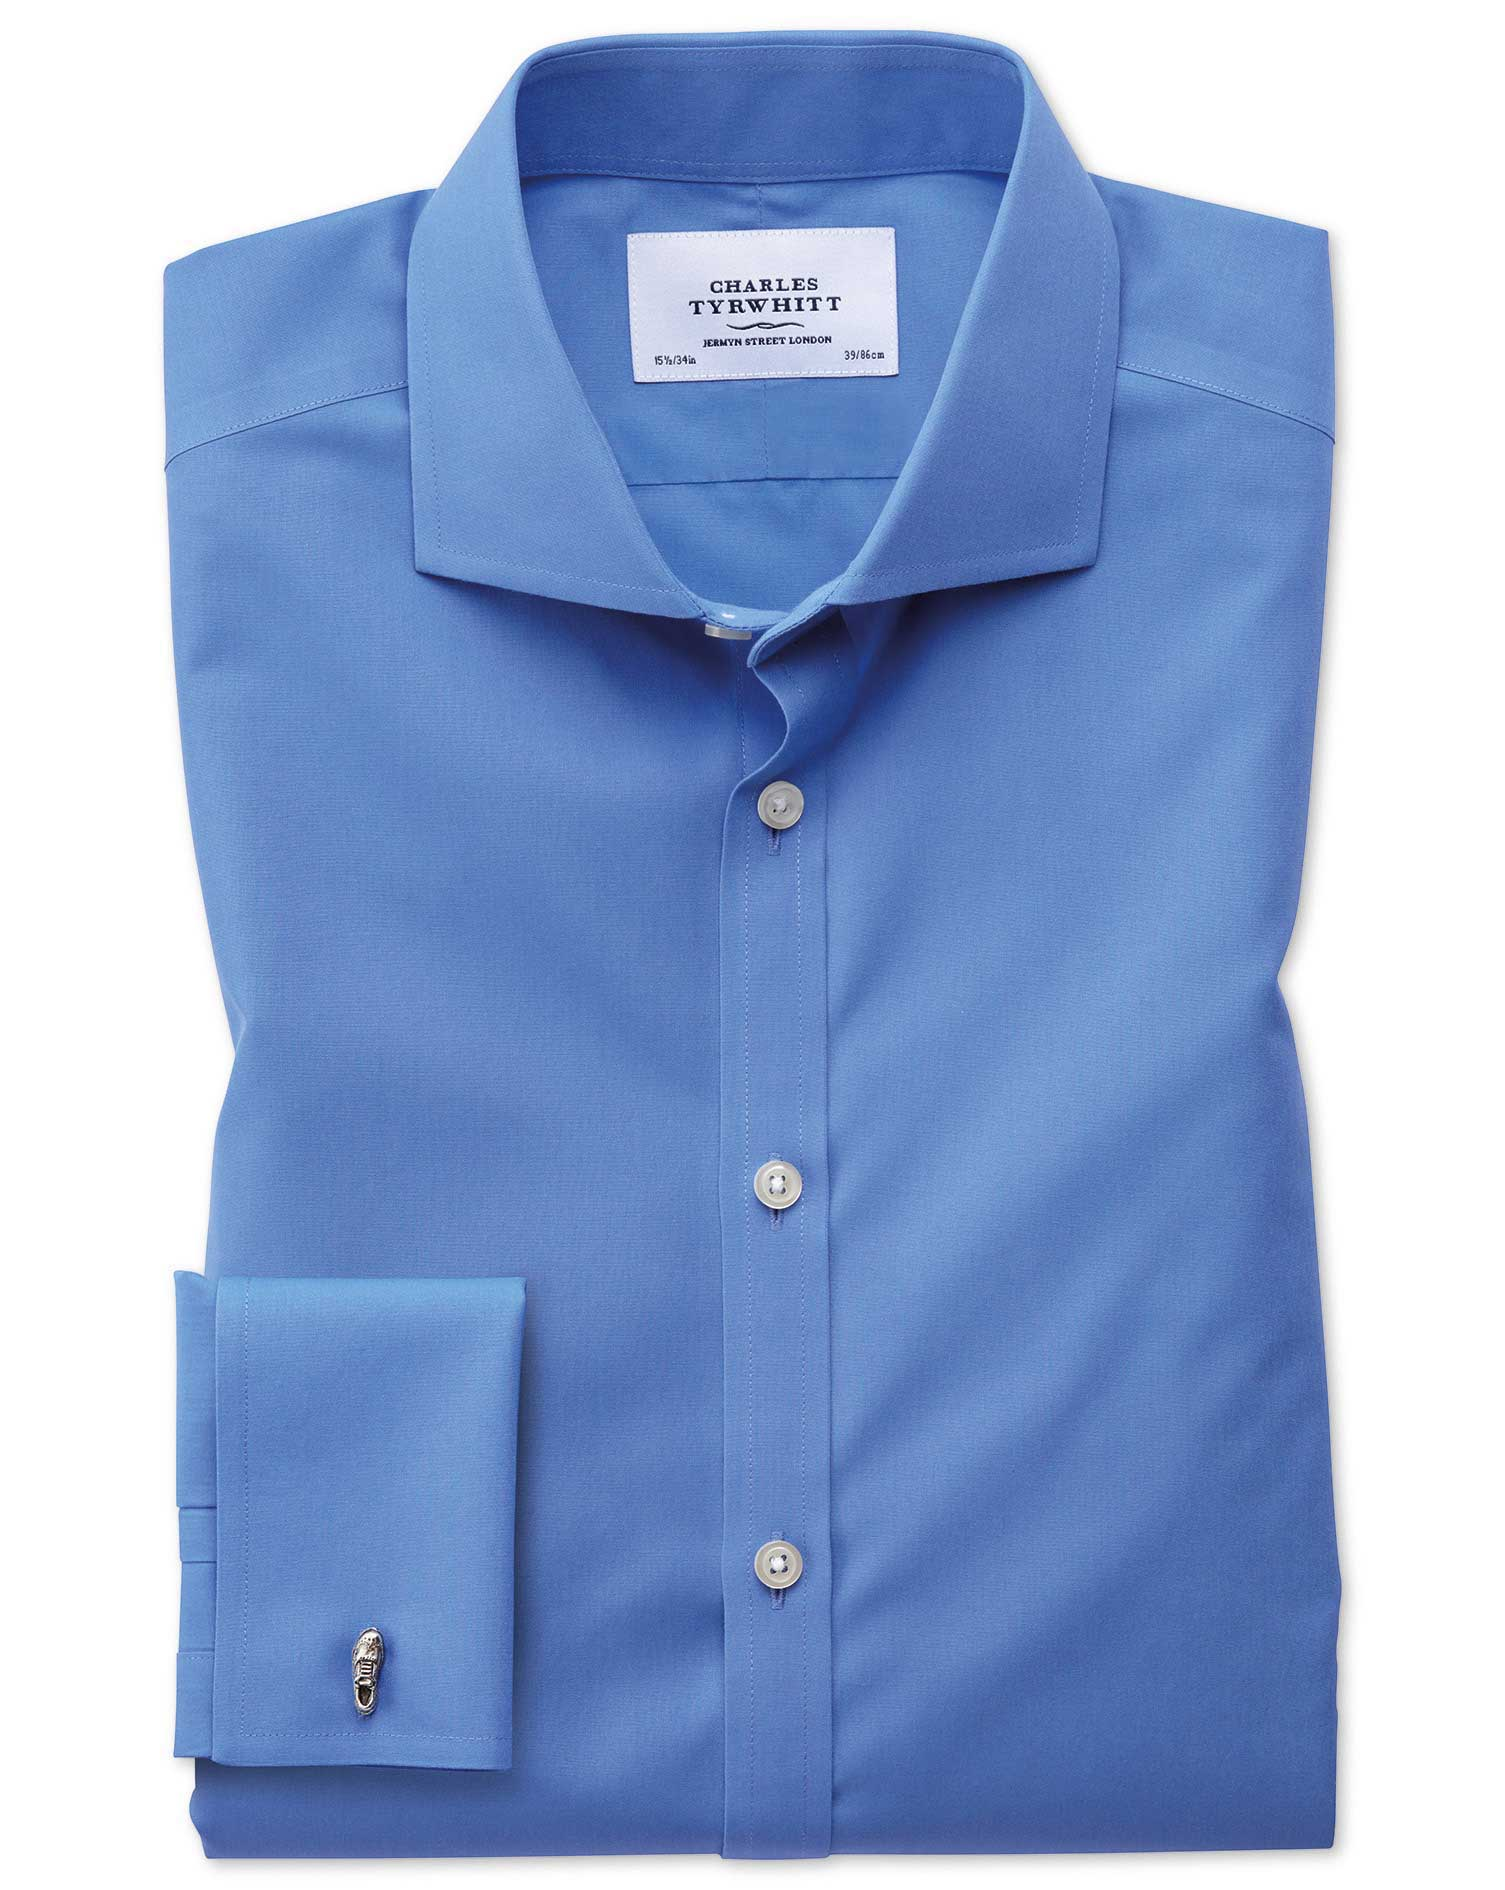 Extra Slim Fit Cutaway Non-Iron Poplin Blue Cotton Formal Shirt Single Cuff Size 17/34 by Charles Ty